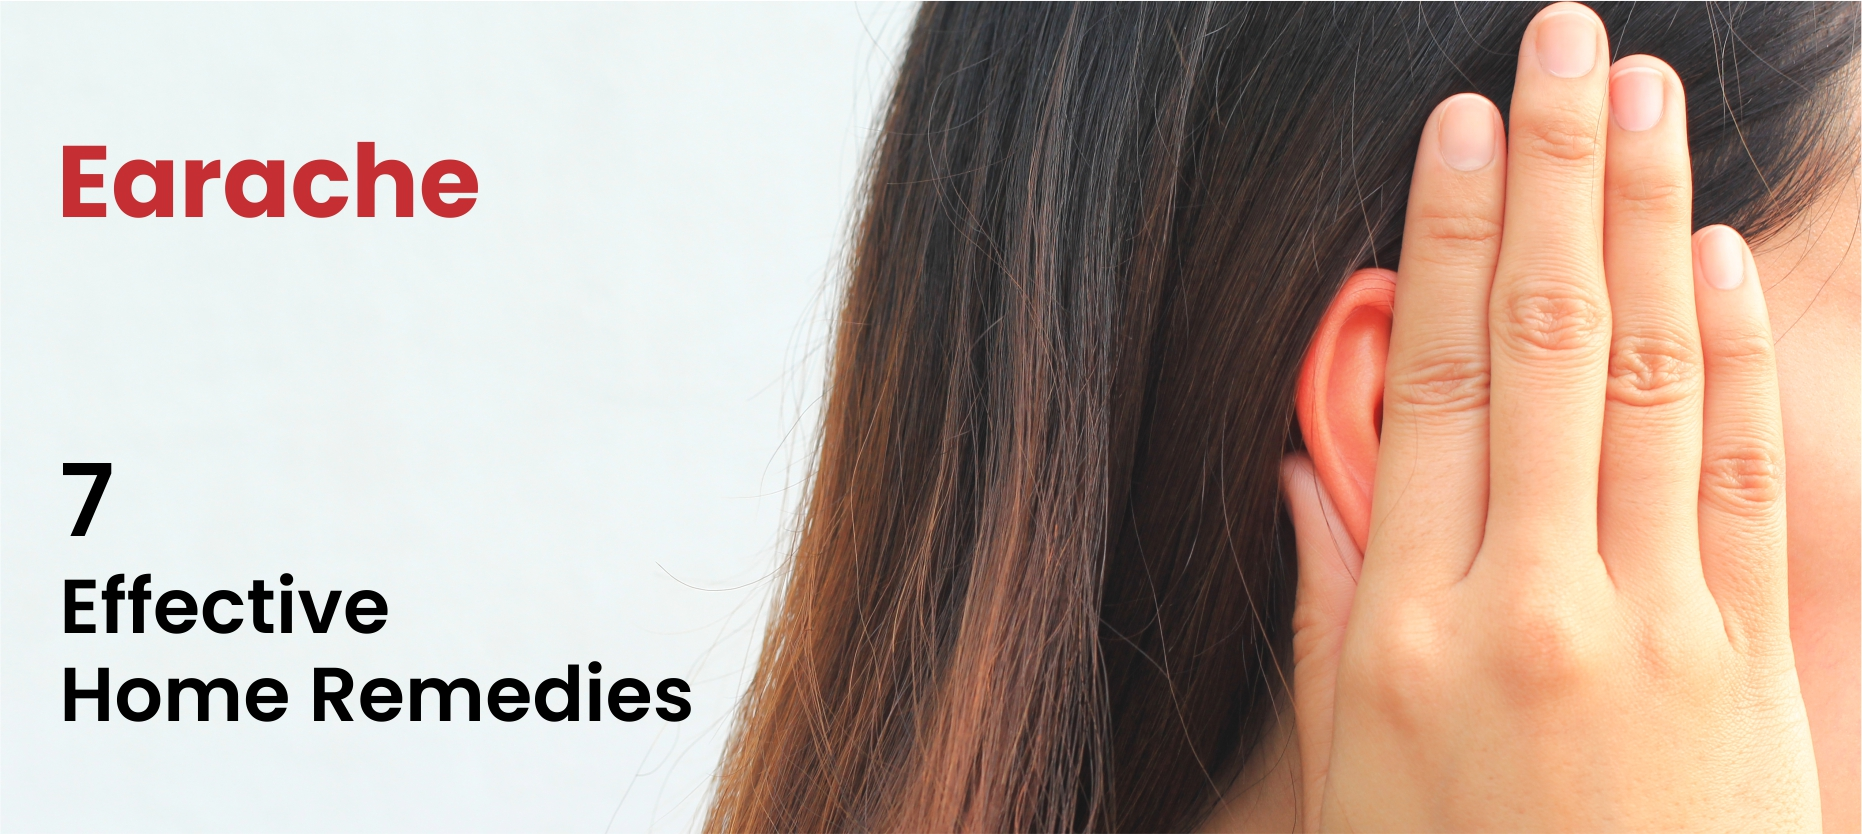 Proven Home Remedies for Earache from Experts